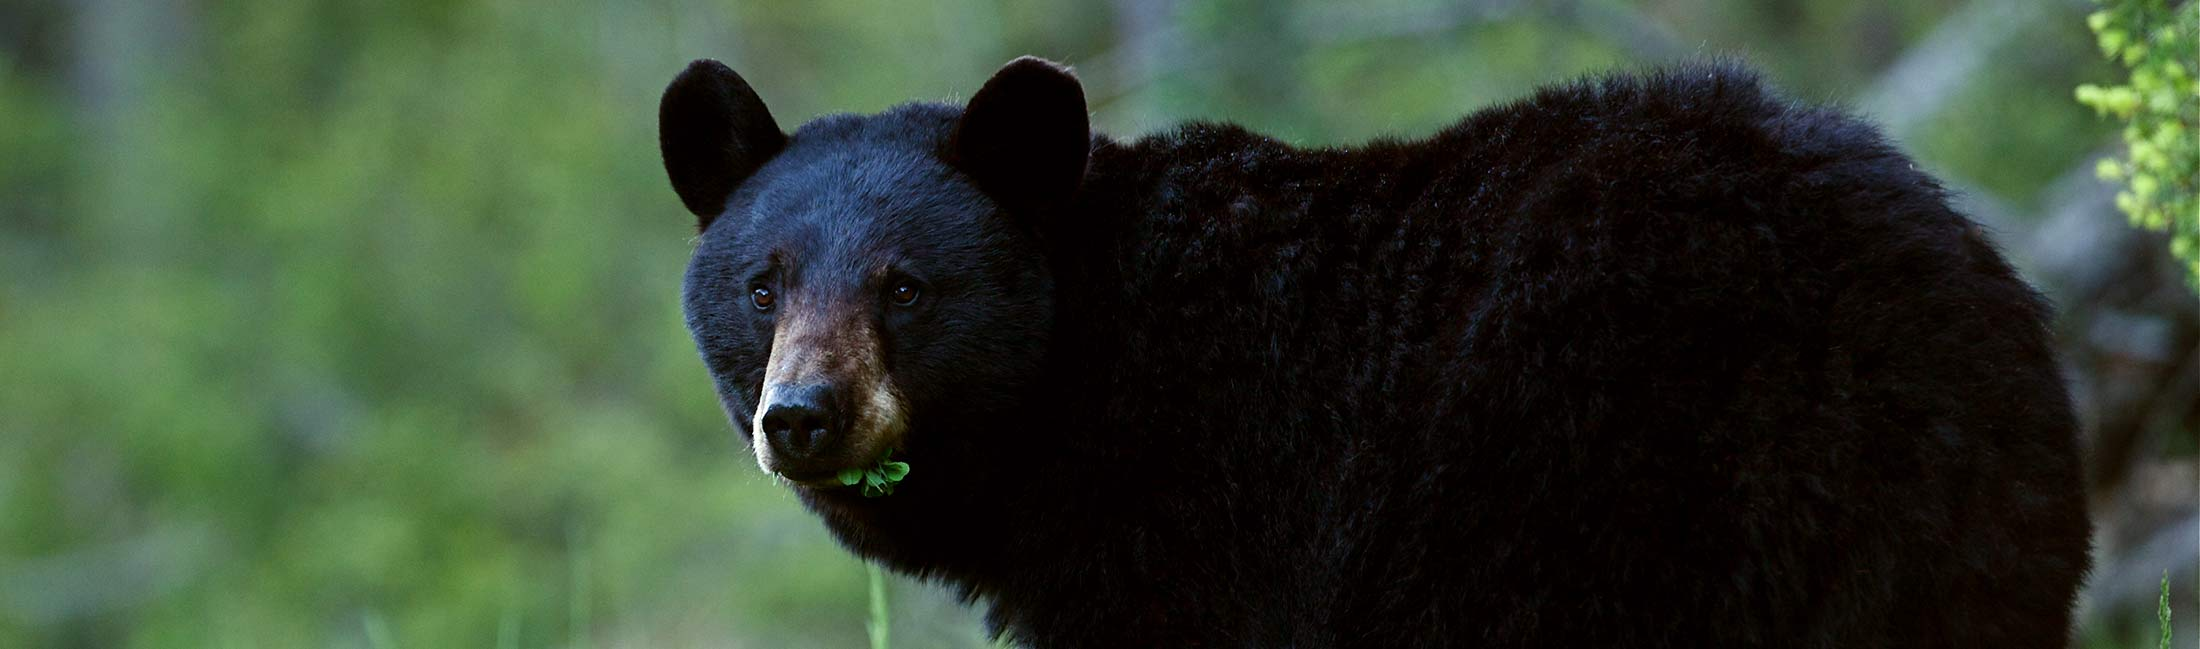 Black Bear in Missoula, Montana